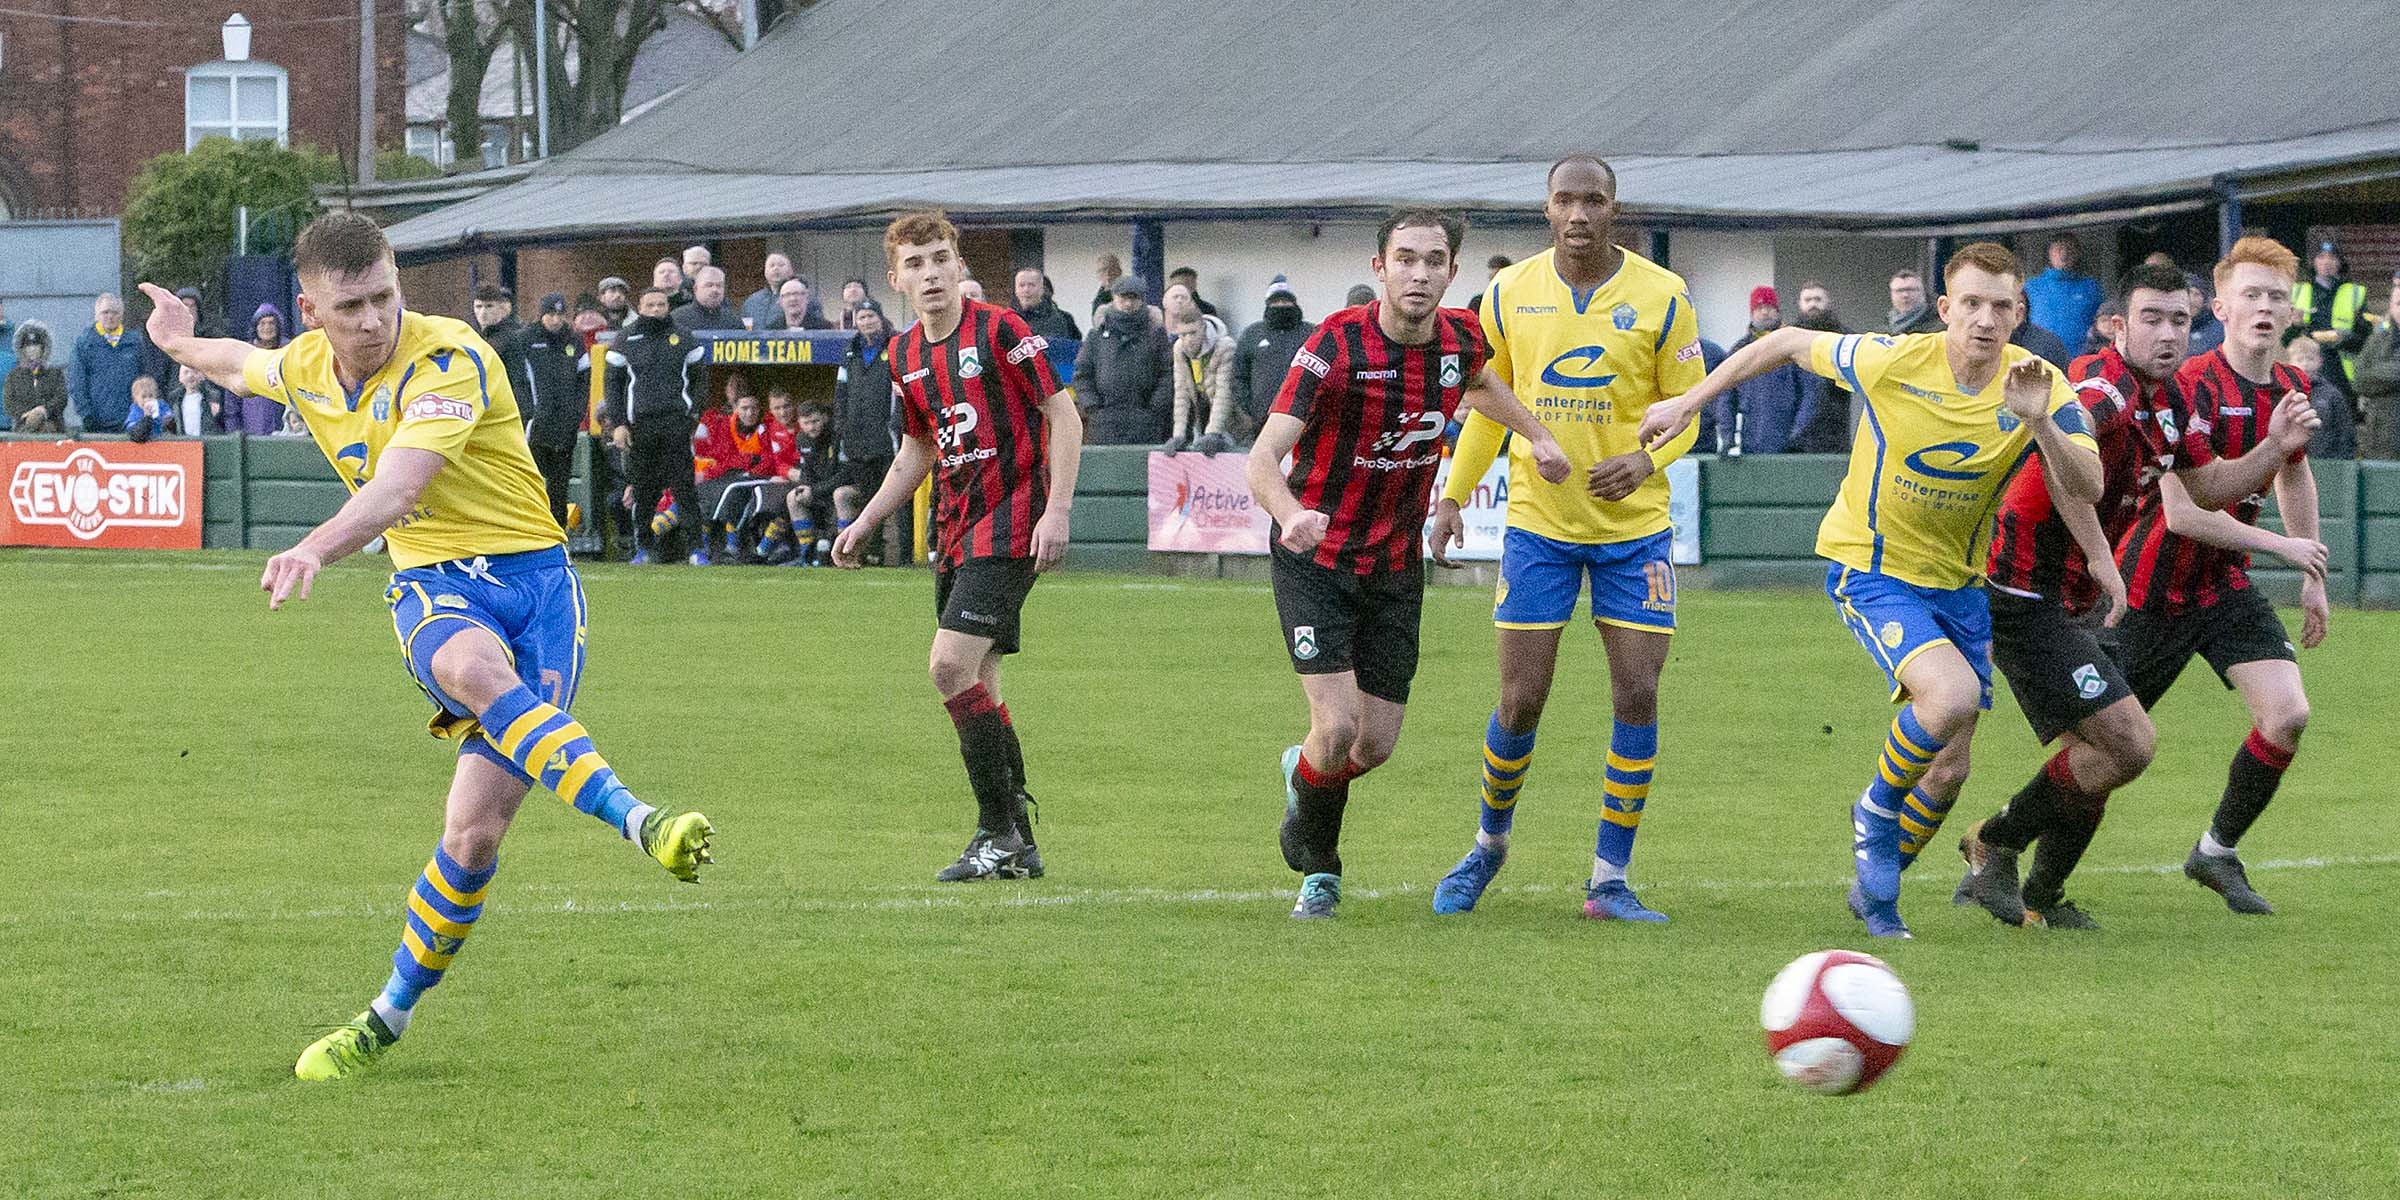 Jack Mackreth has scored 10 goals for Warrington Town this season. Picture by John Hopkins